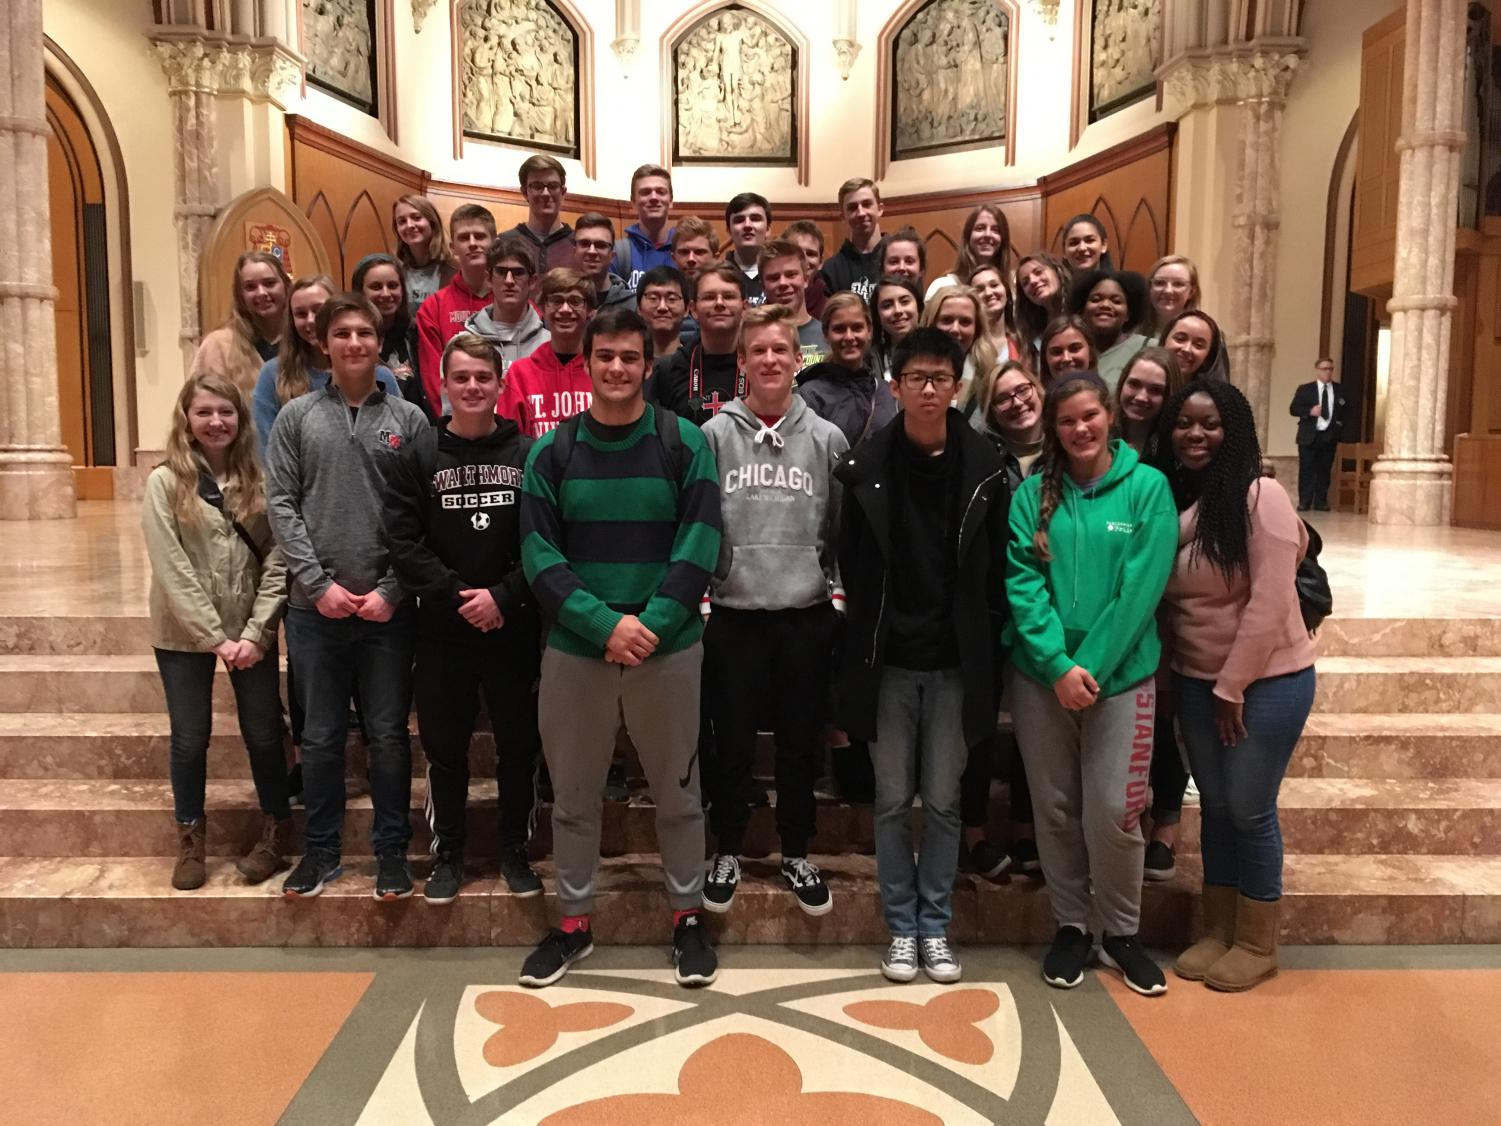 Students+from+Mount+Michael+Benedictine+in+Elkhorn+and+Marian+in+Omaha+take+a+group+photo+in+the+Holy+Name+Cathedral+of+Chicago+after+the+Saturday+sessions+of+the+JEA%2FNSPA+Convention.